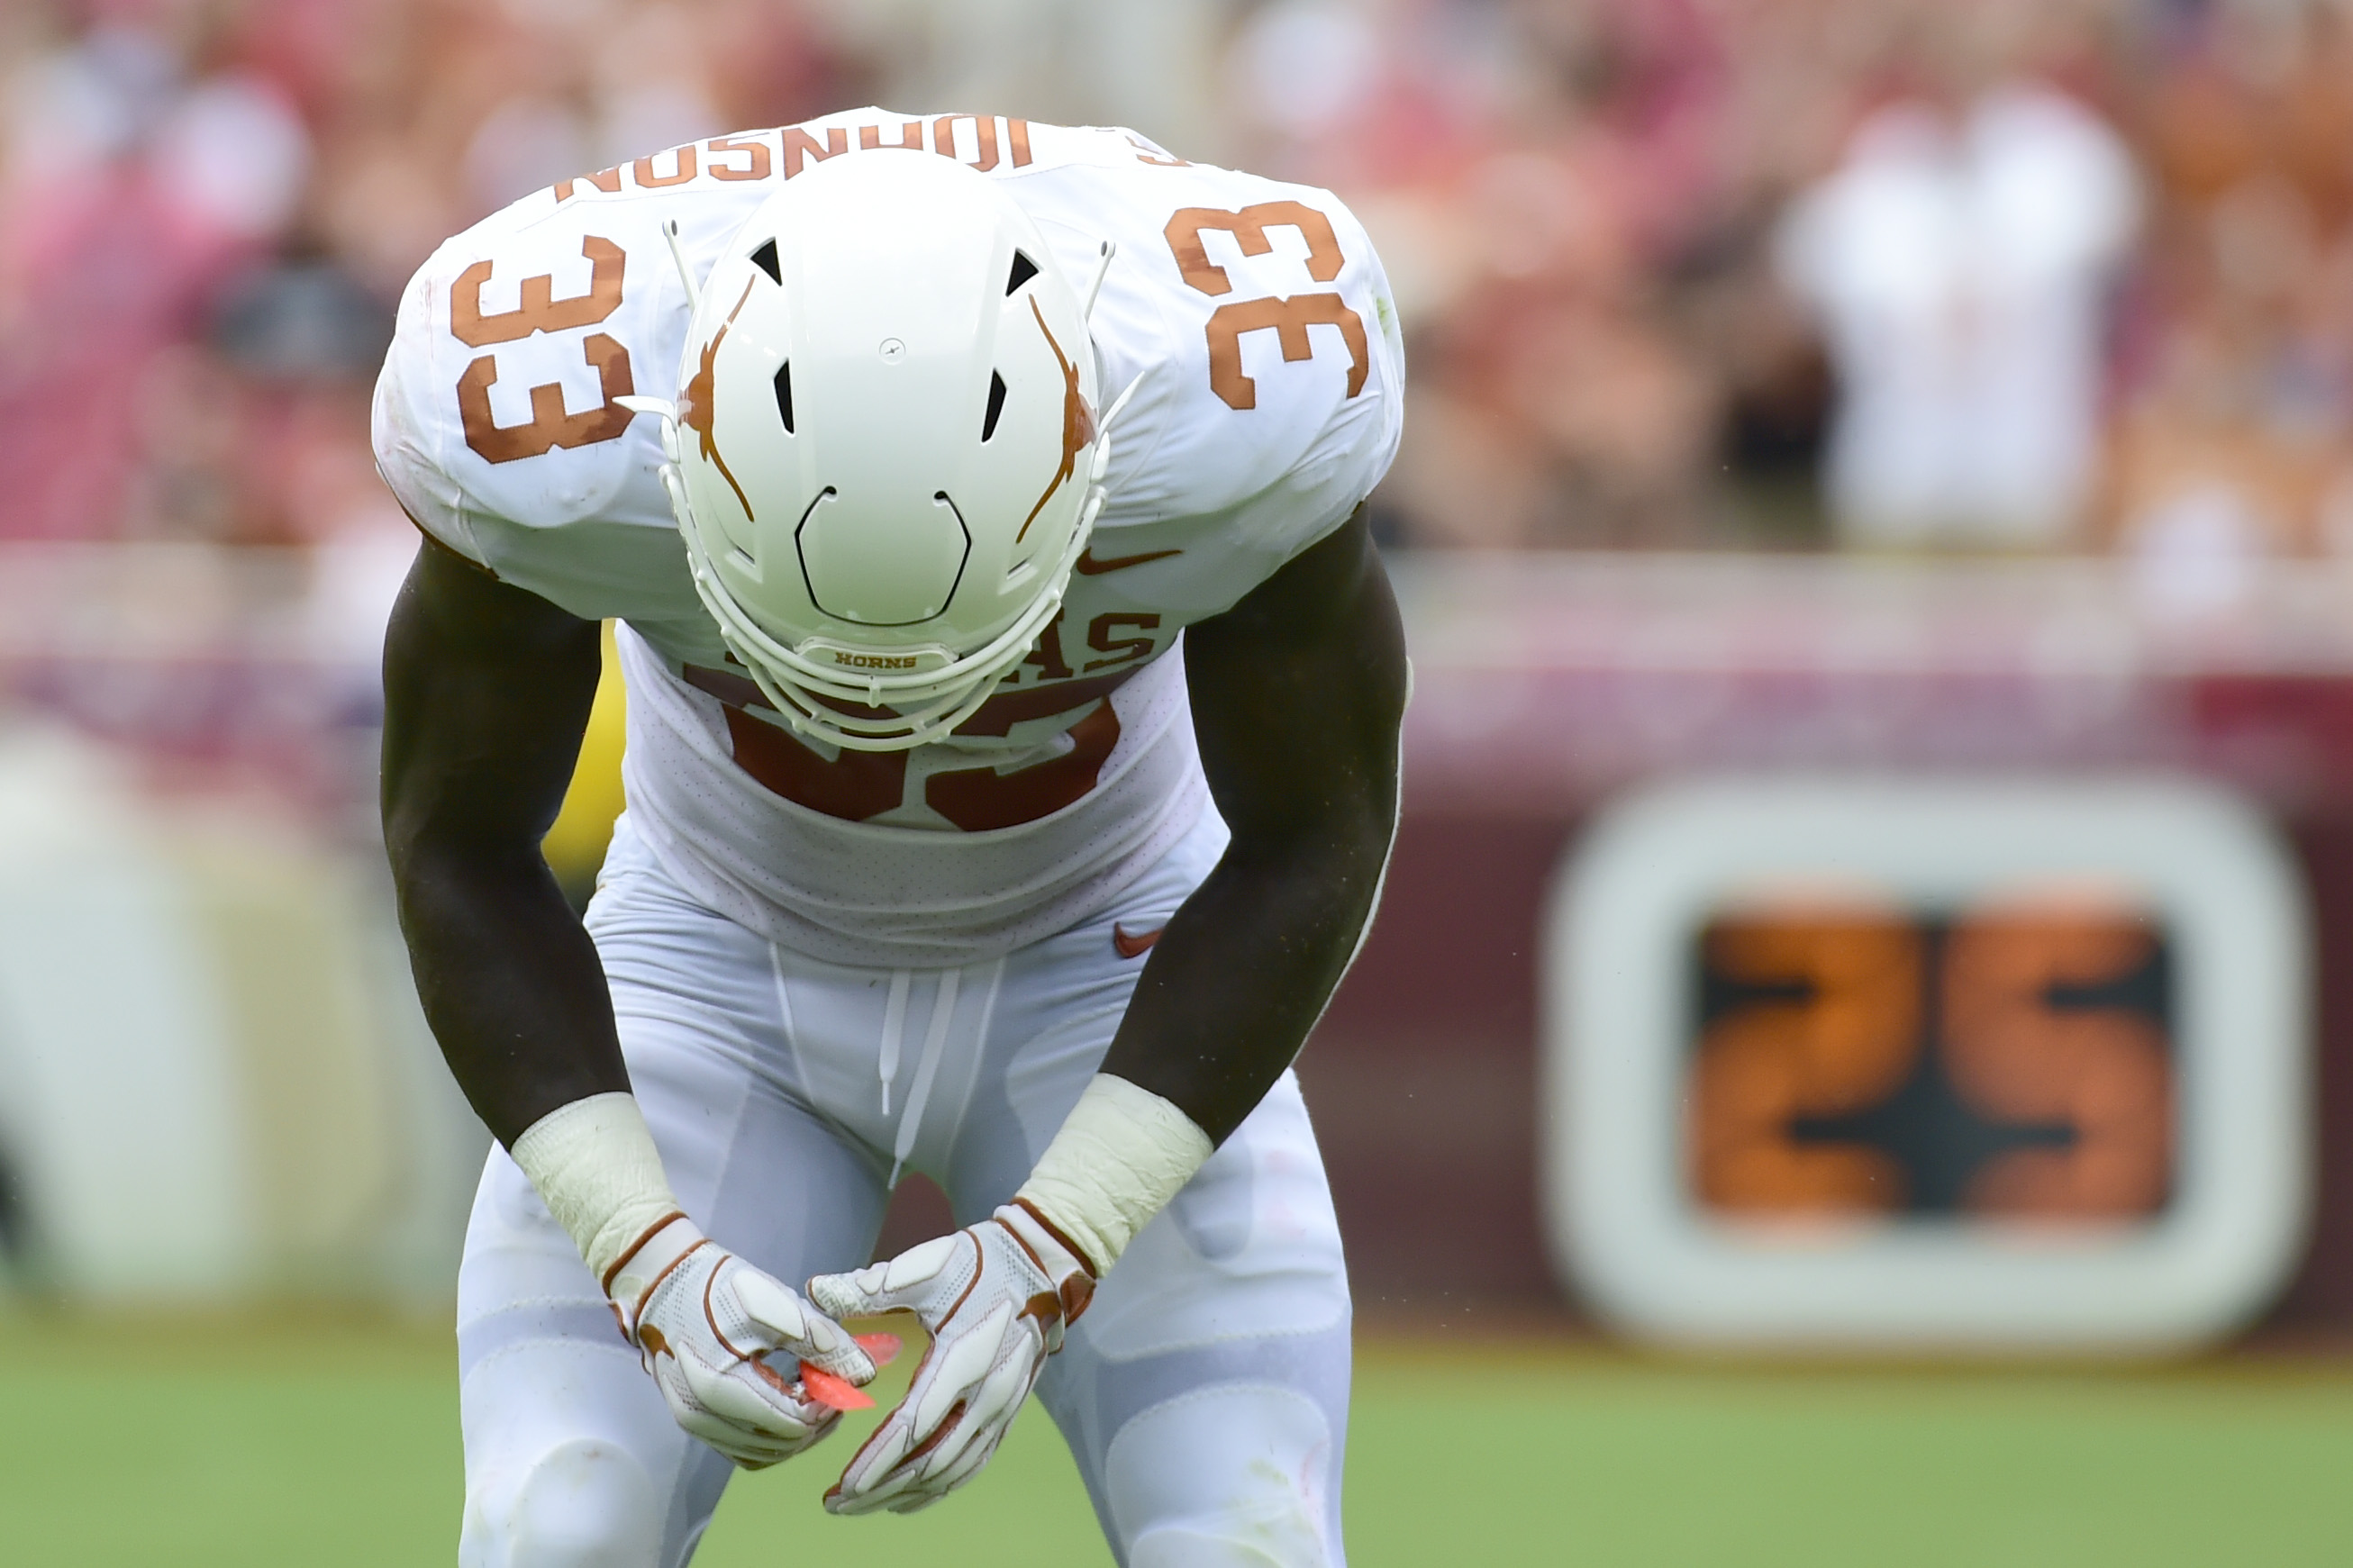 Sep 1, 2018; Landover, MD, USA;  Texas Longhorns linebacker Gary Johnson (33) reacts after being ejected from the game for targeting during the first quarter  against the Maryland Terrapins at FedEx Field. Mandatory Credit: Tommy Gilligan-USA TODAY Sports